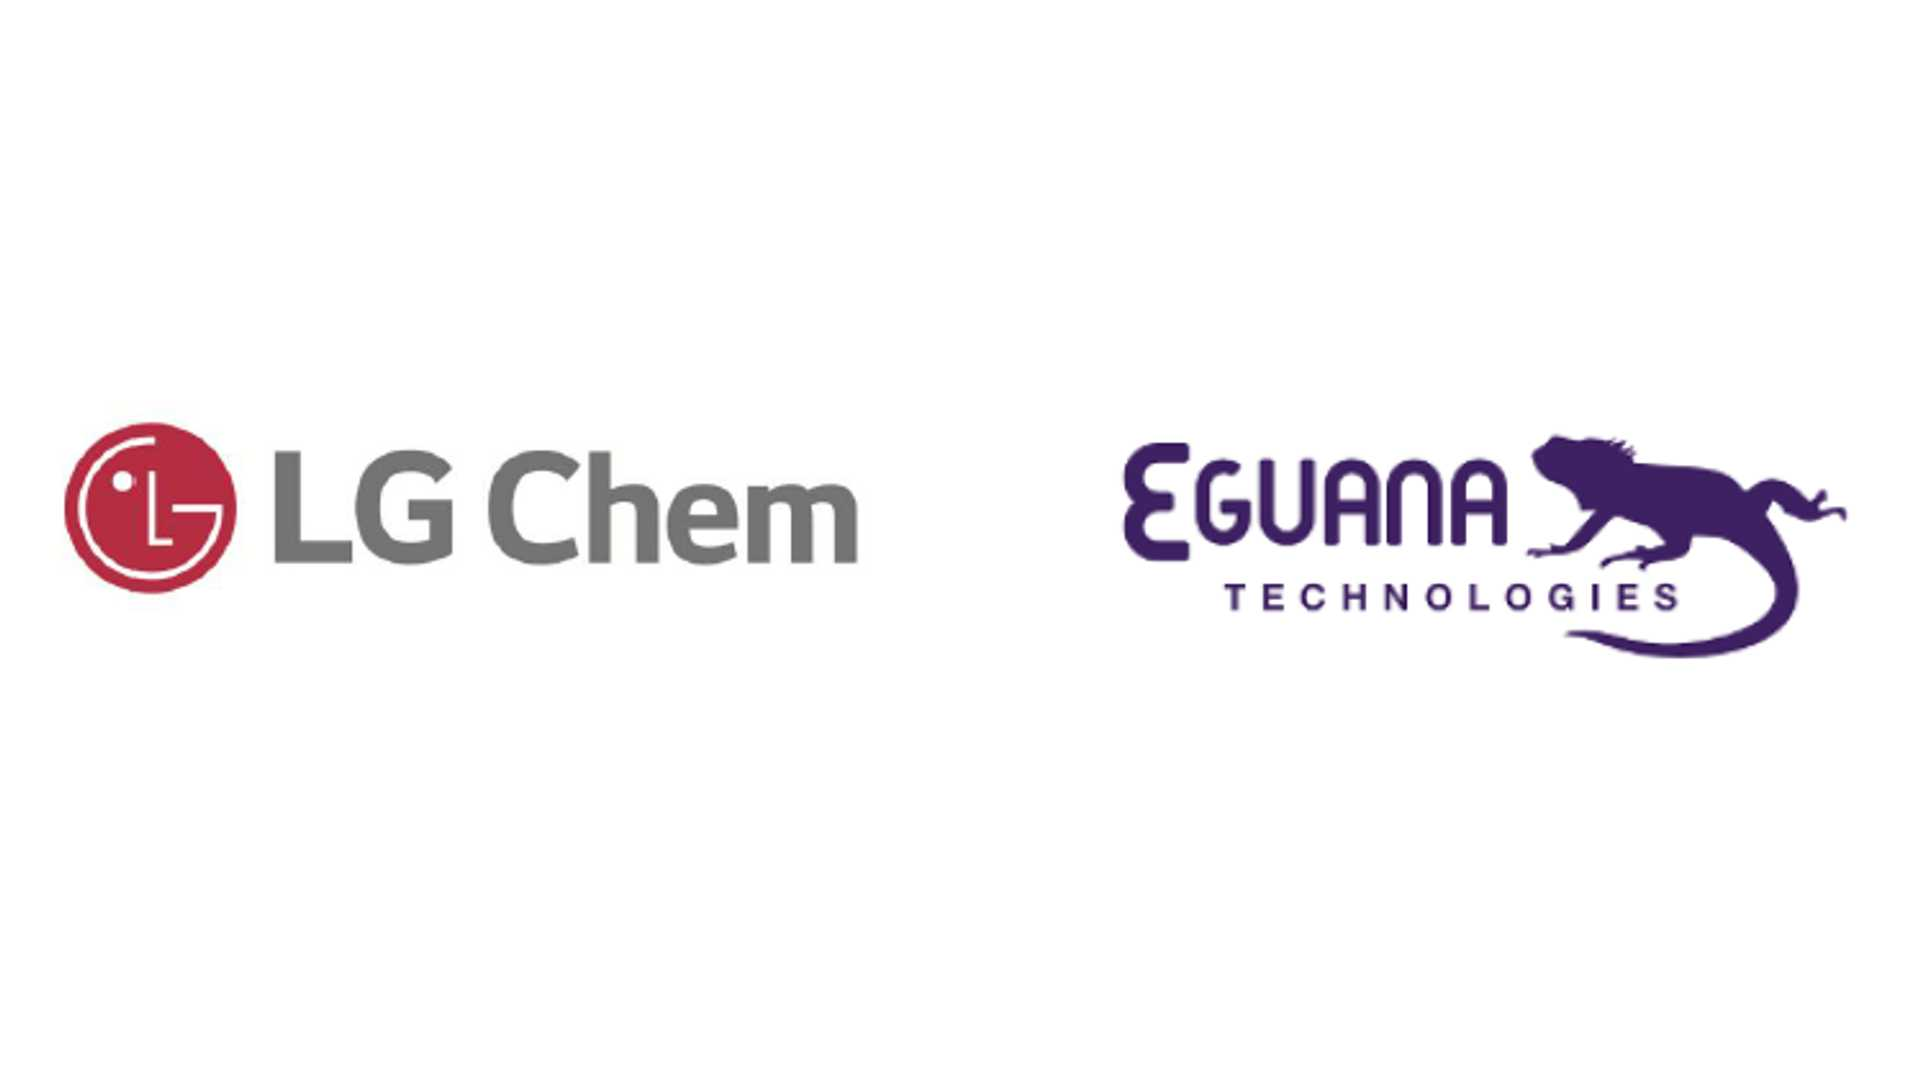 LG Chem Teams With Equana For Lithium-Ion Home Energy Storage